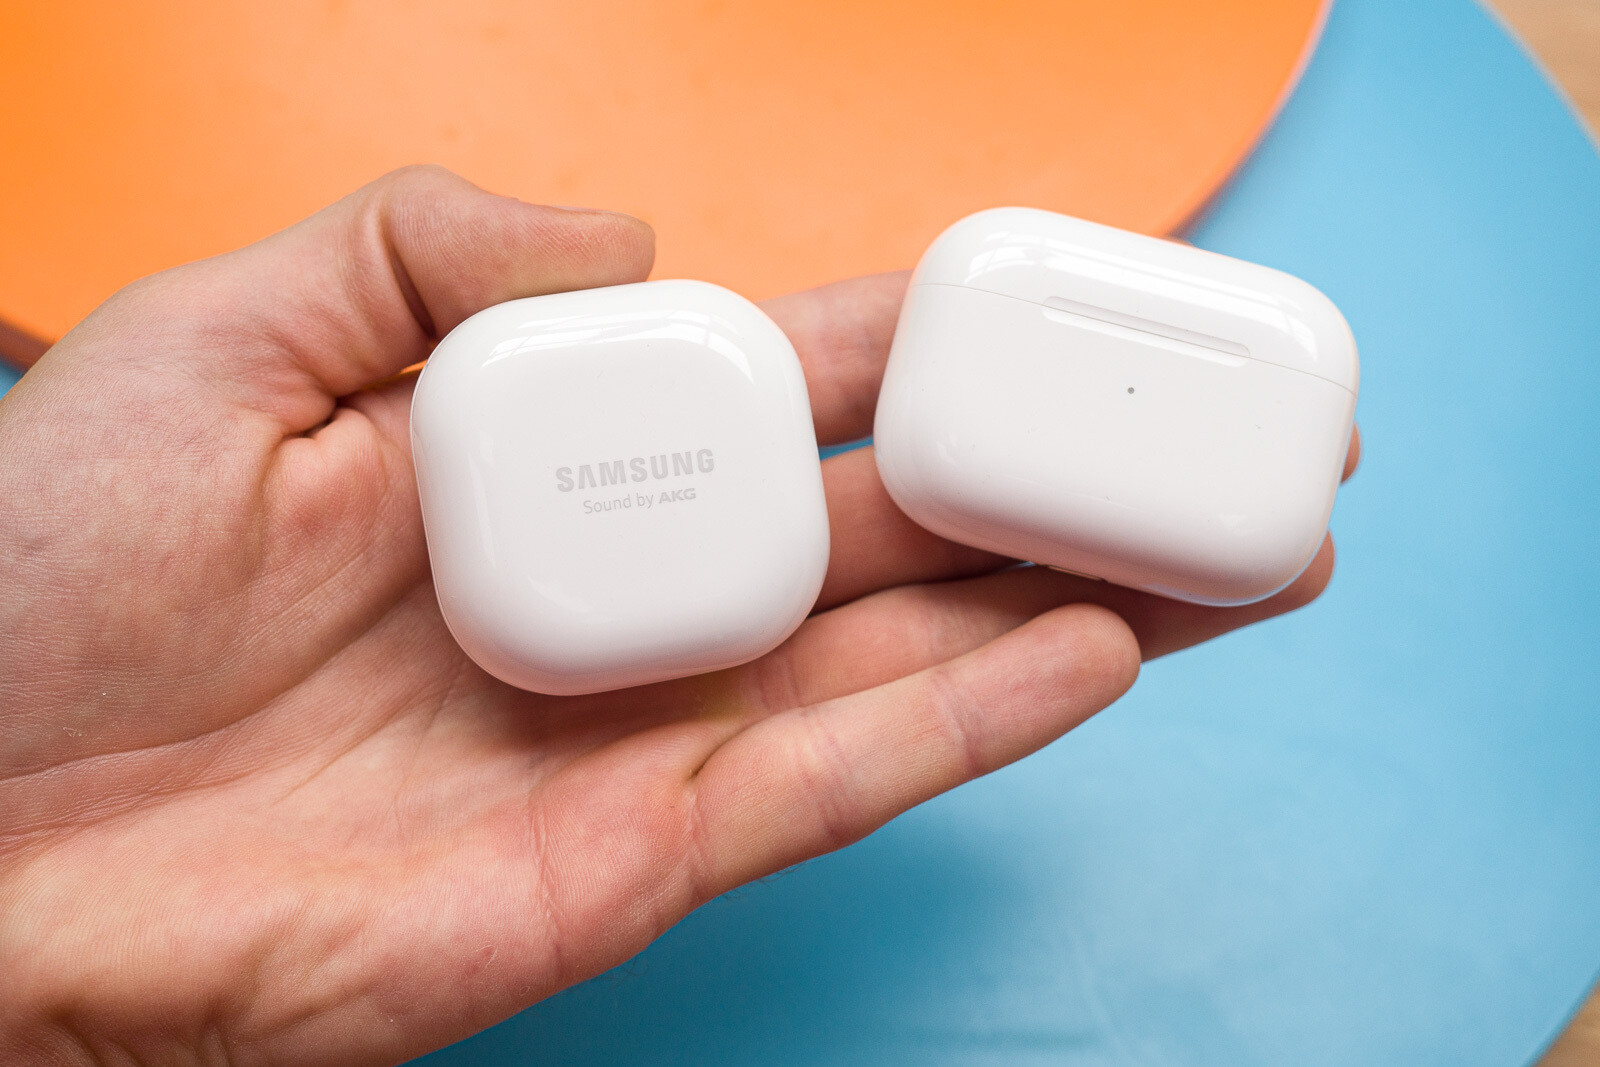 airpods pro vs airpods 2 battery life